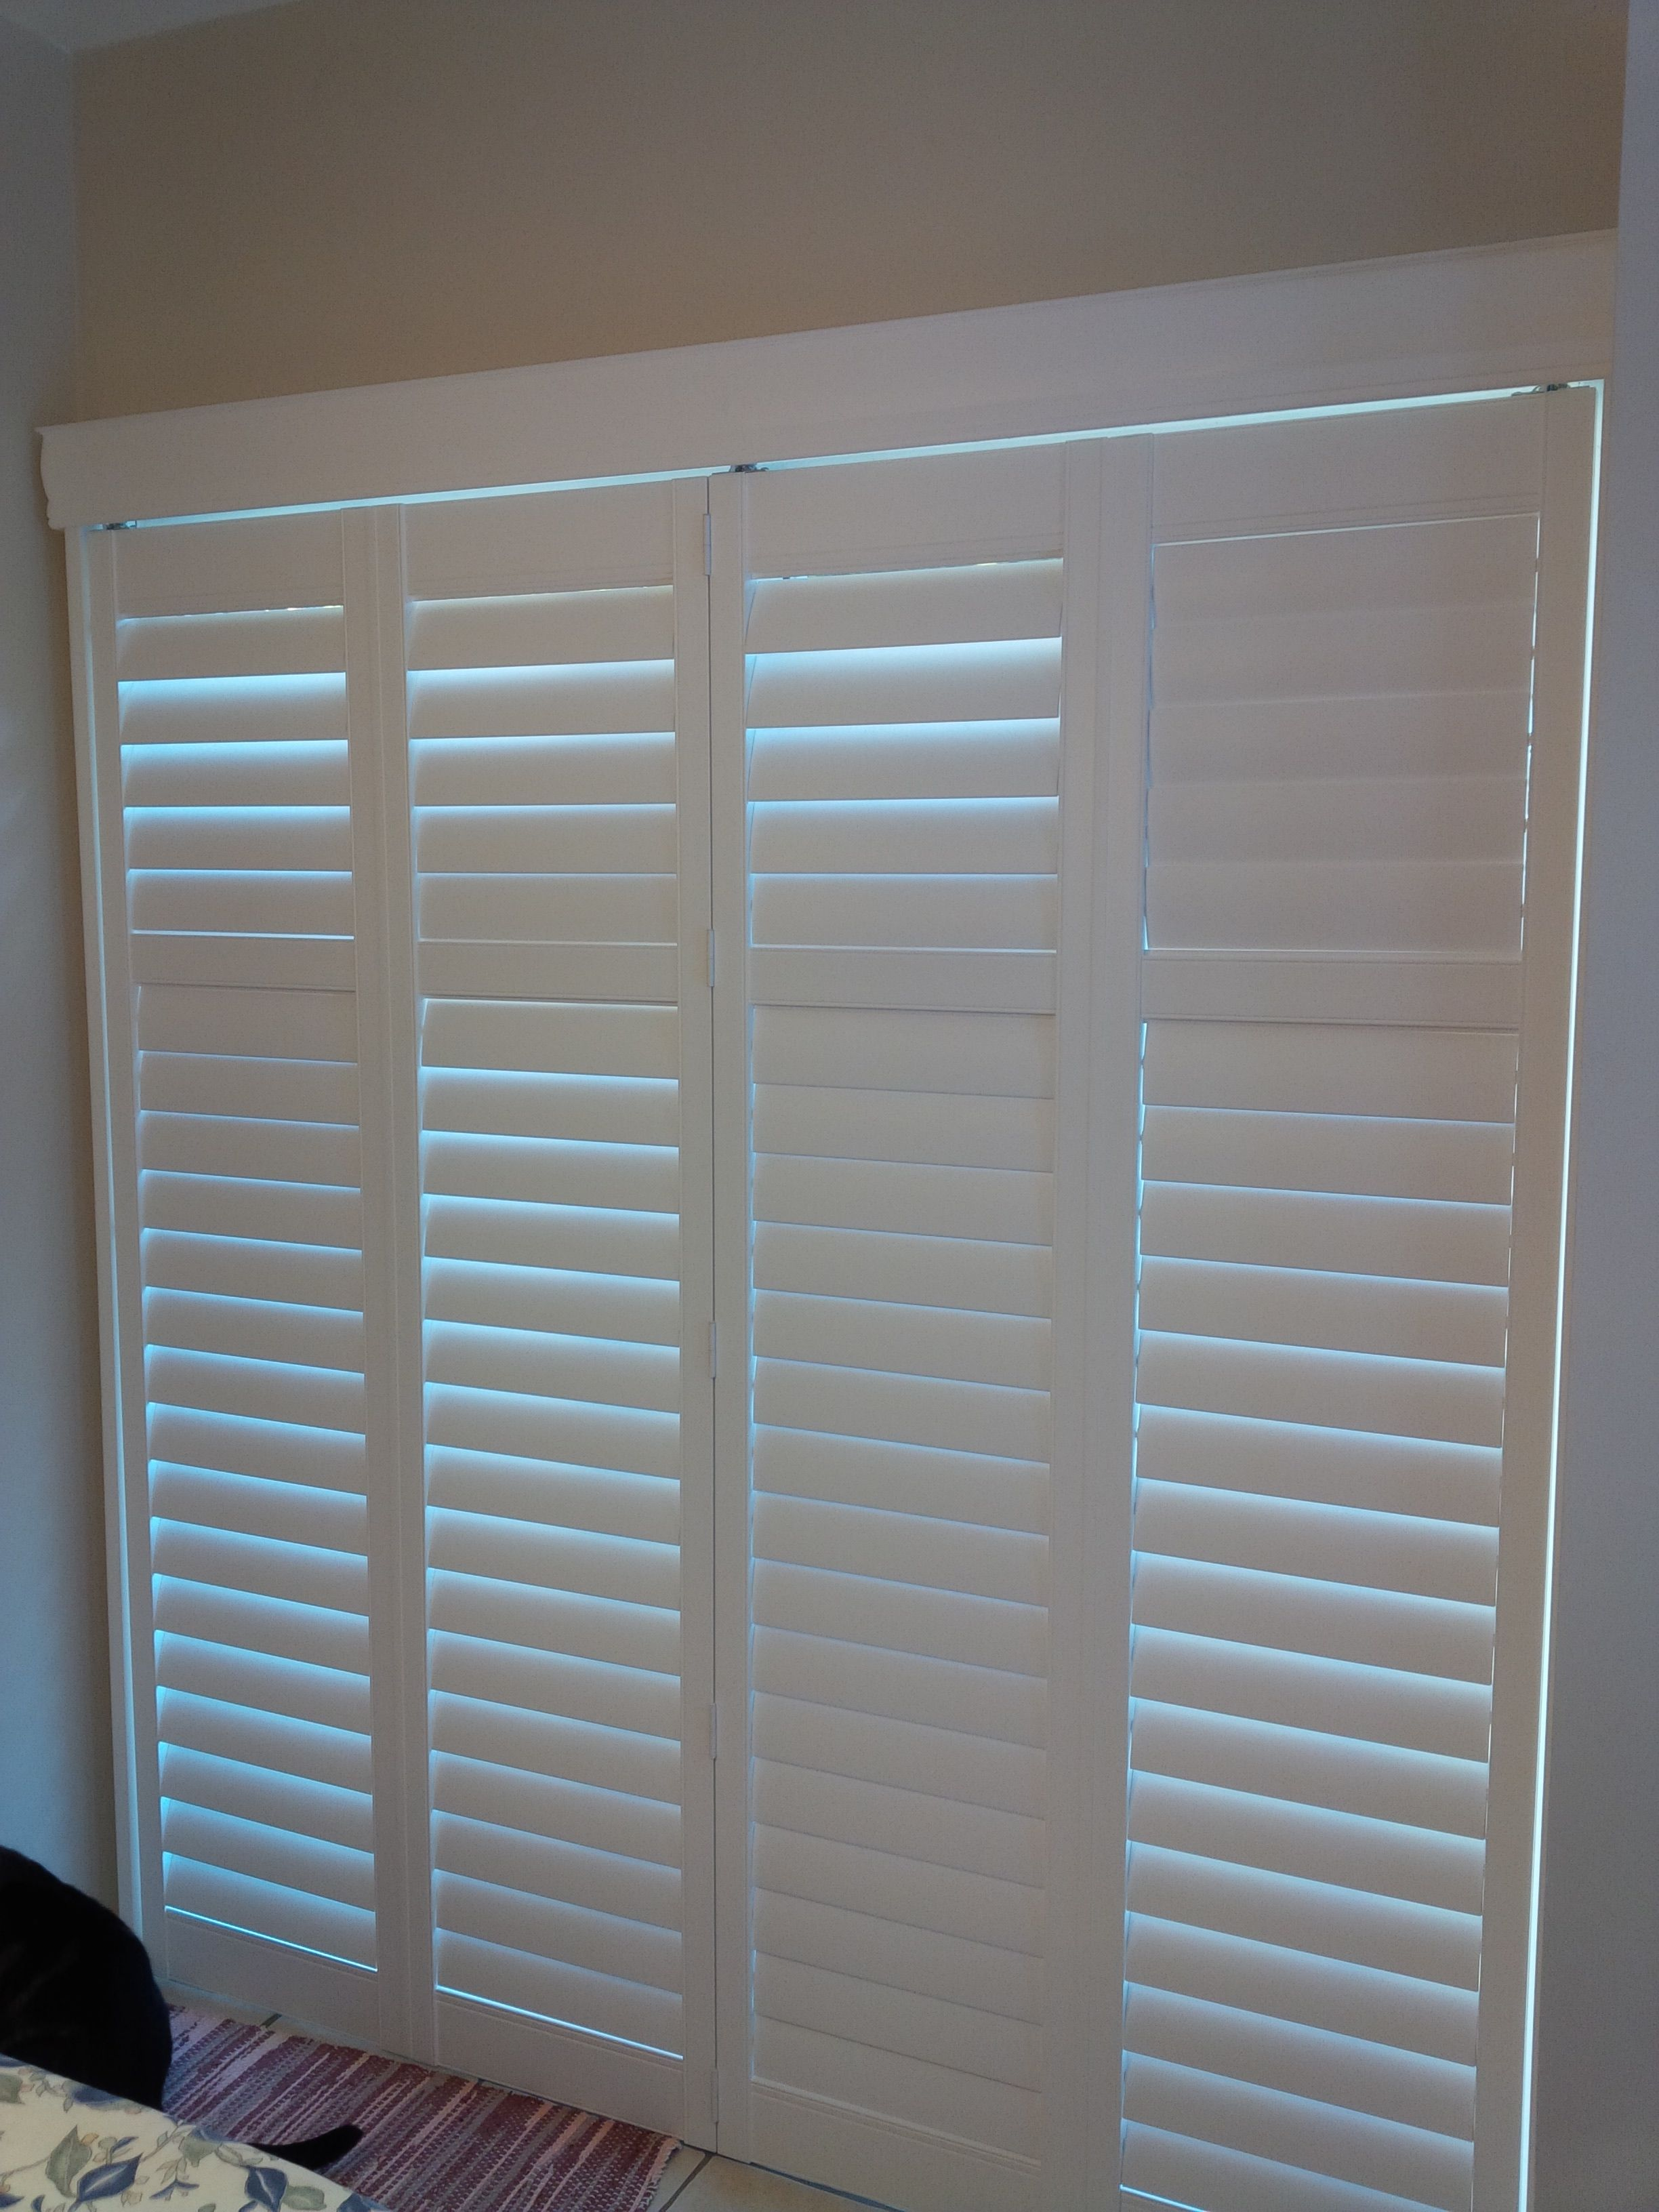 Eclipse 3 1 2 Shutters Thx Frank Our Newmarket Store Your